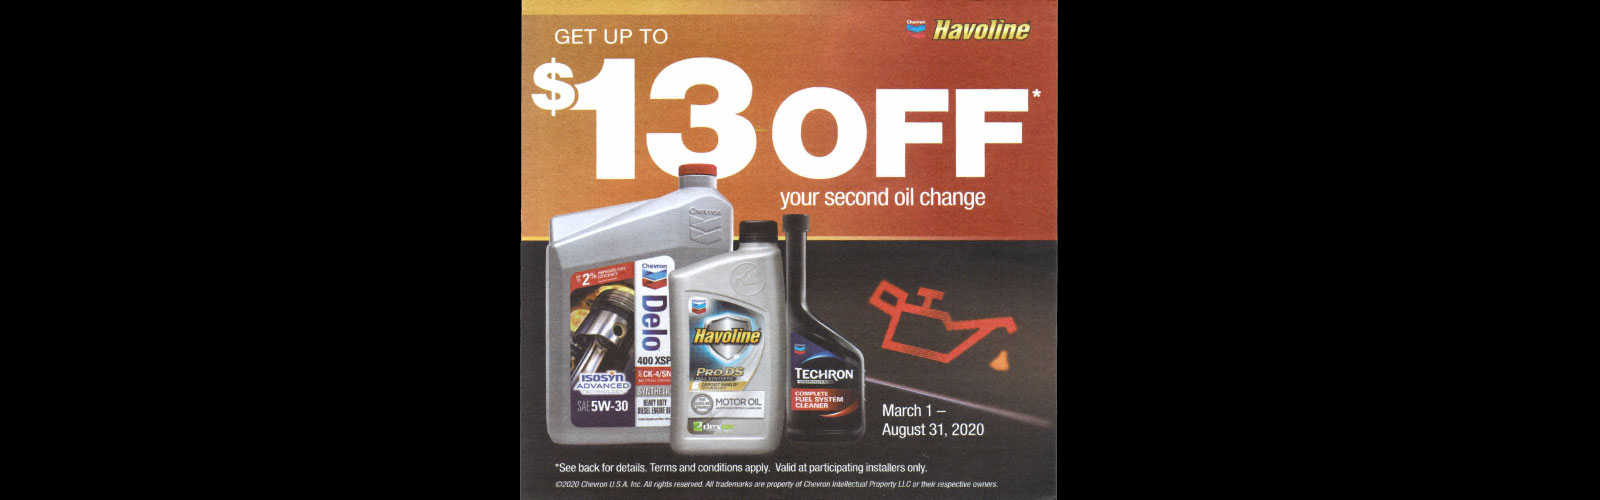 Havoline / Chevron Rebate